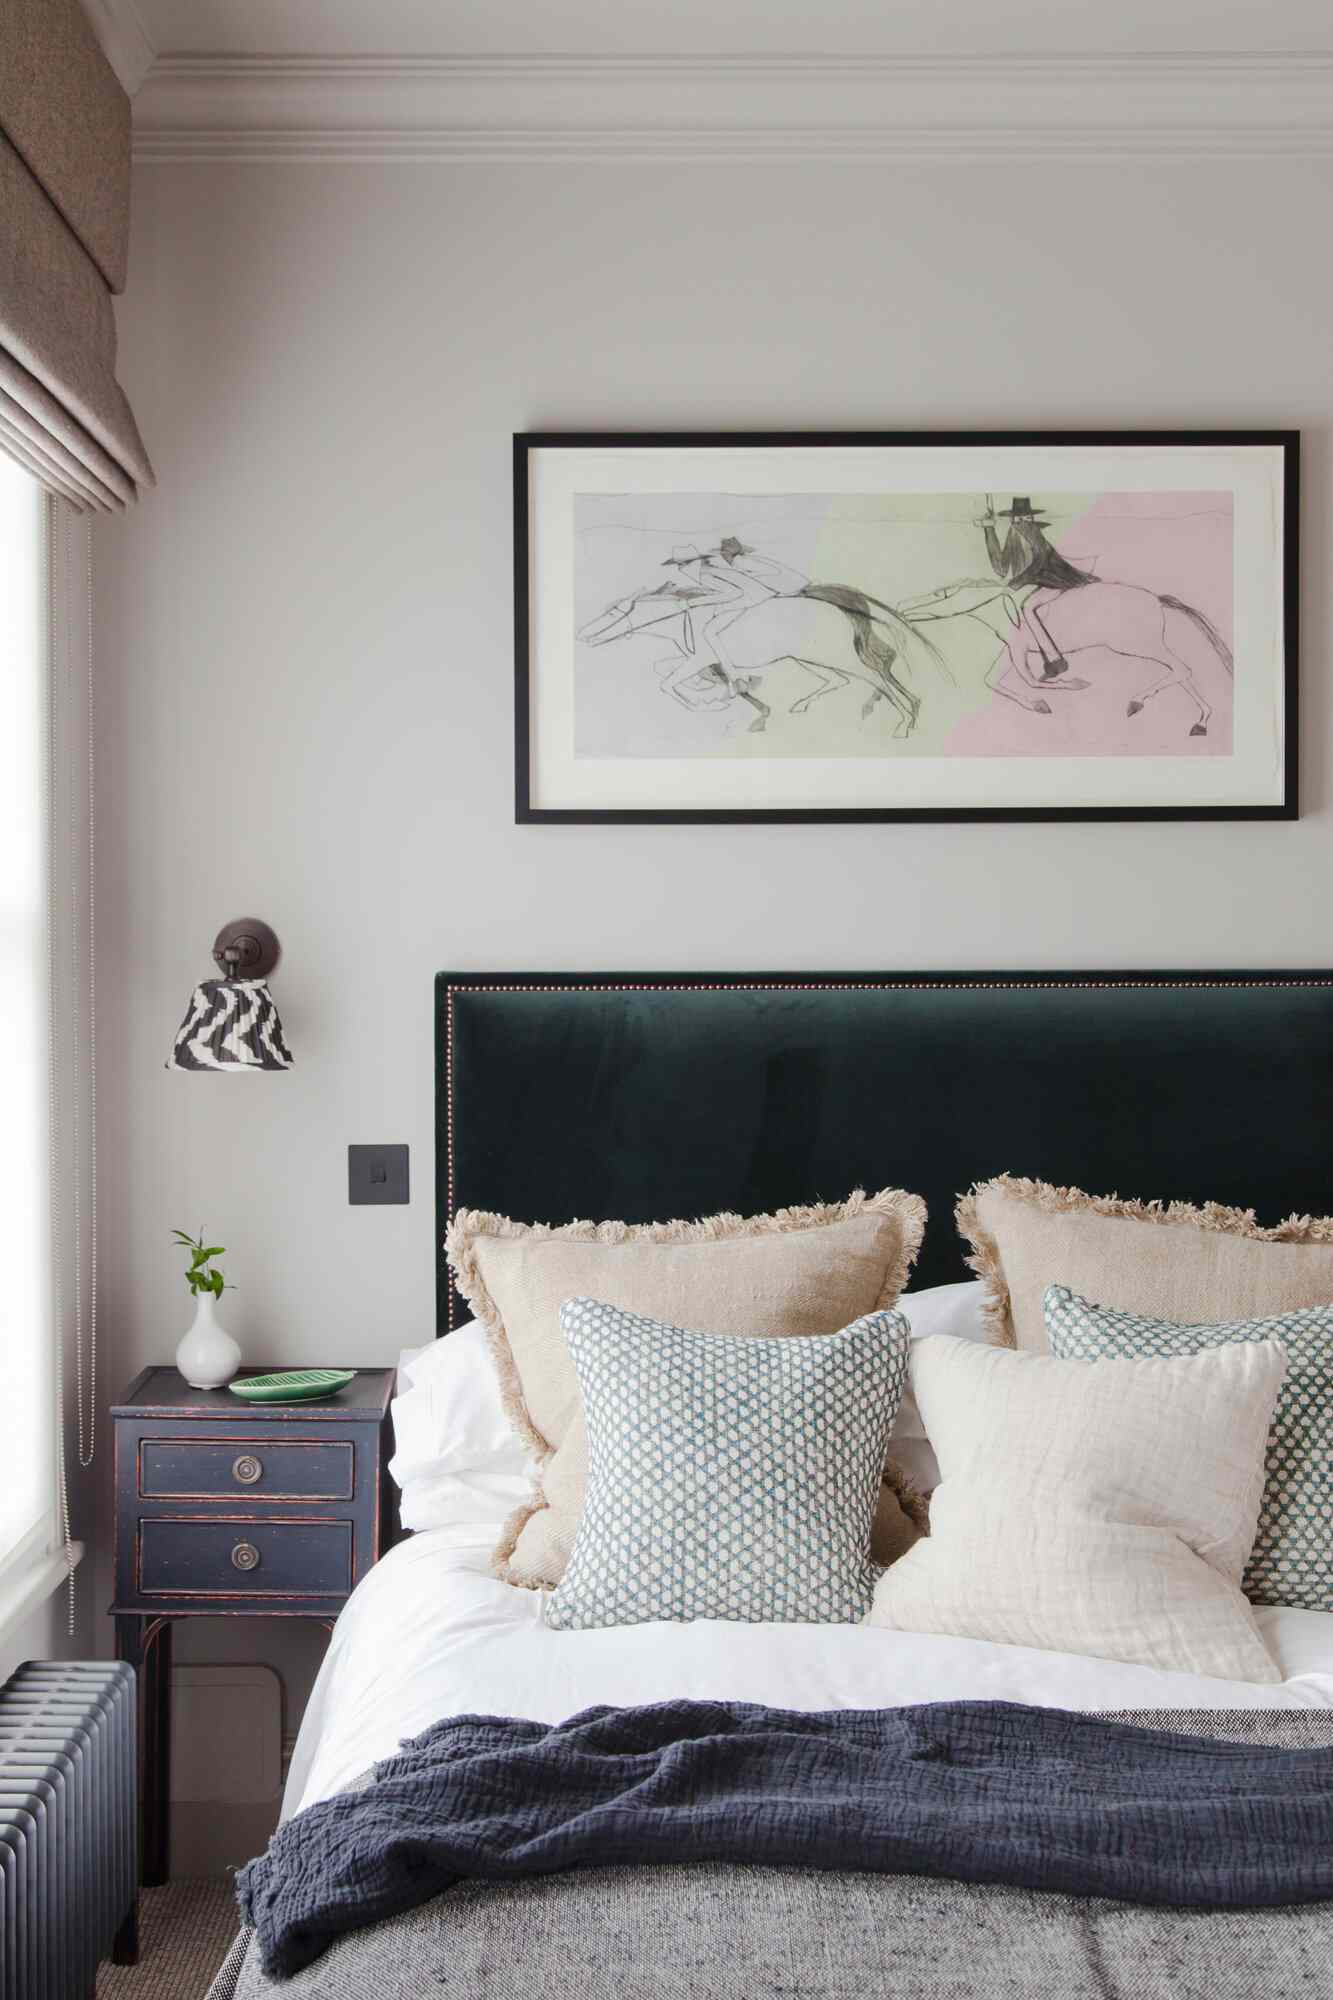 A bedroom with an emerald green upholstered headboard and several pieces of navy decor